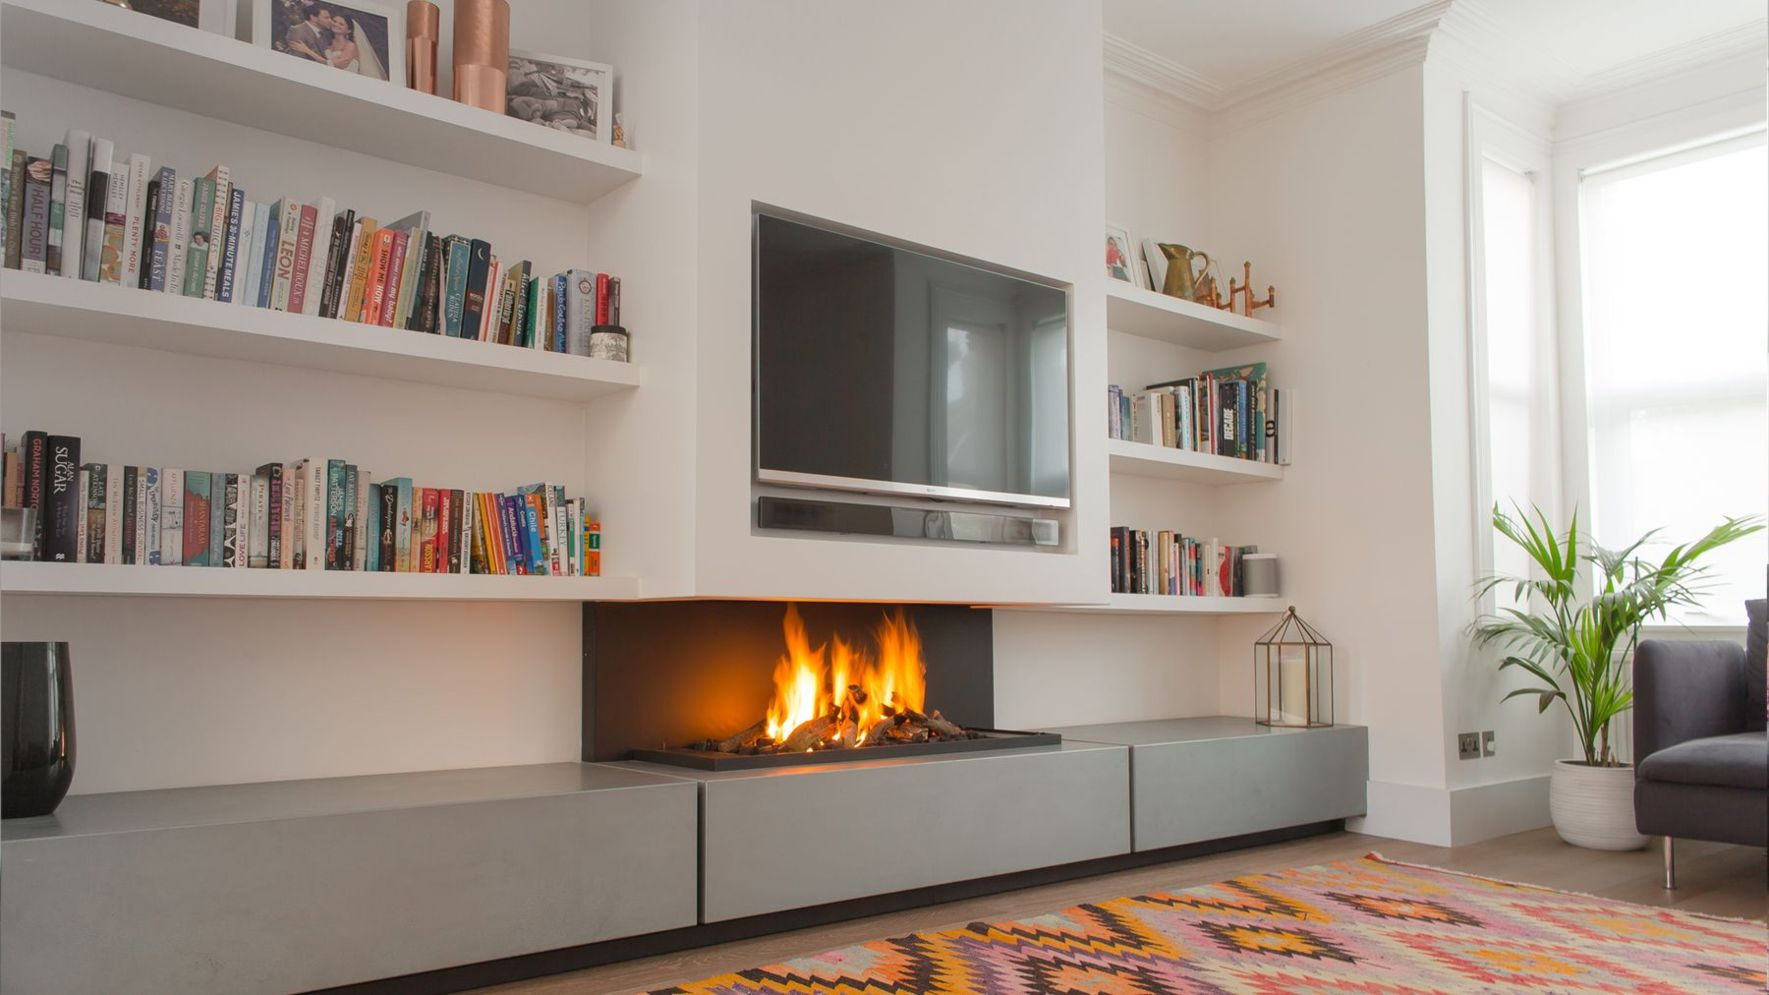 Amazing interior design showing enclosed log burning fireplace along with savvy TV wall Image 7